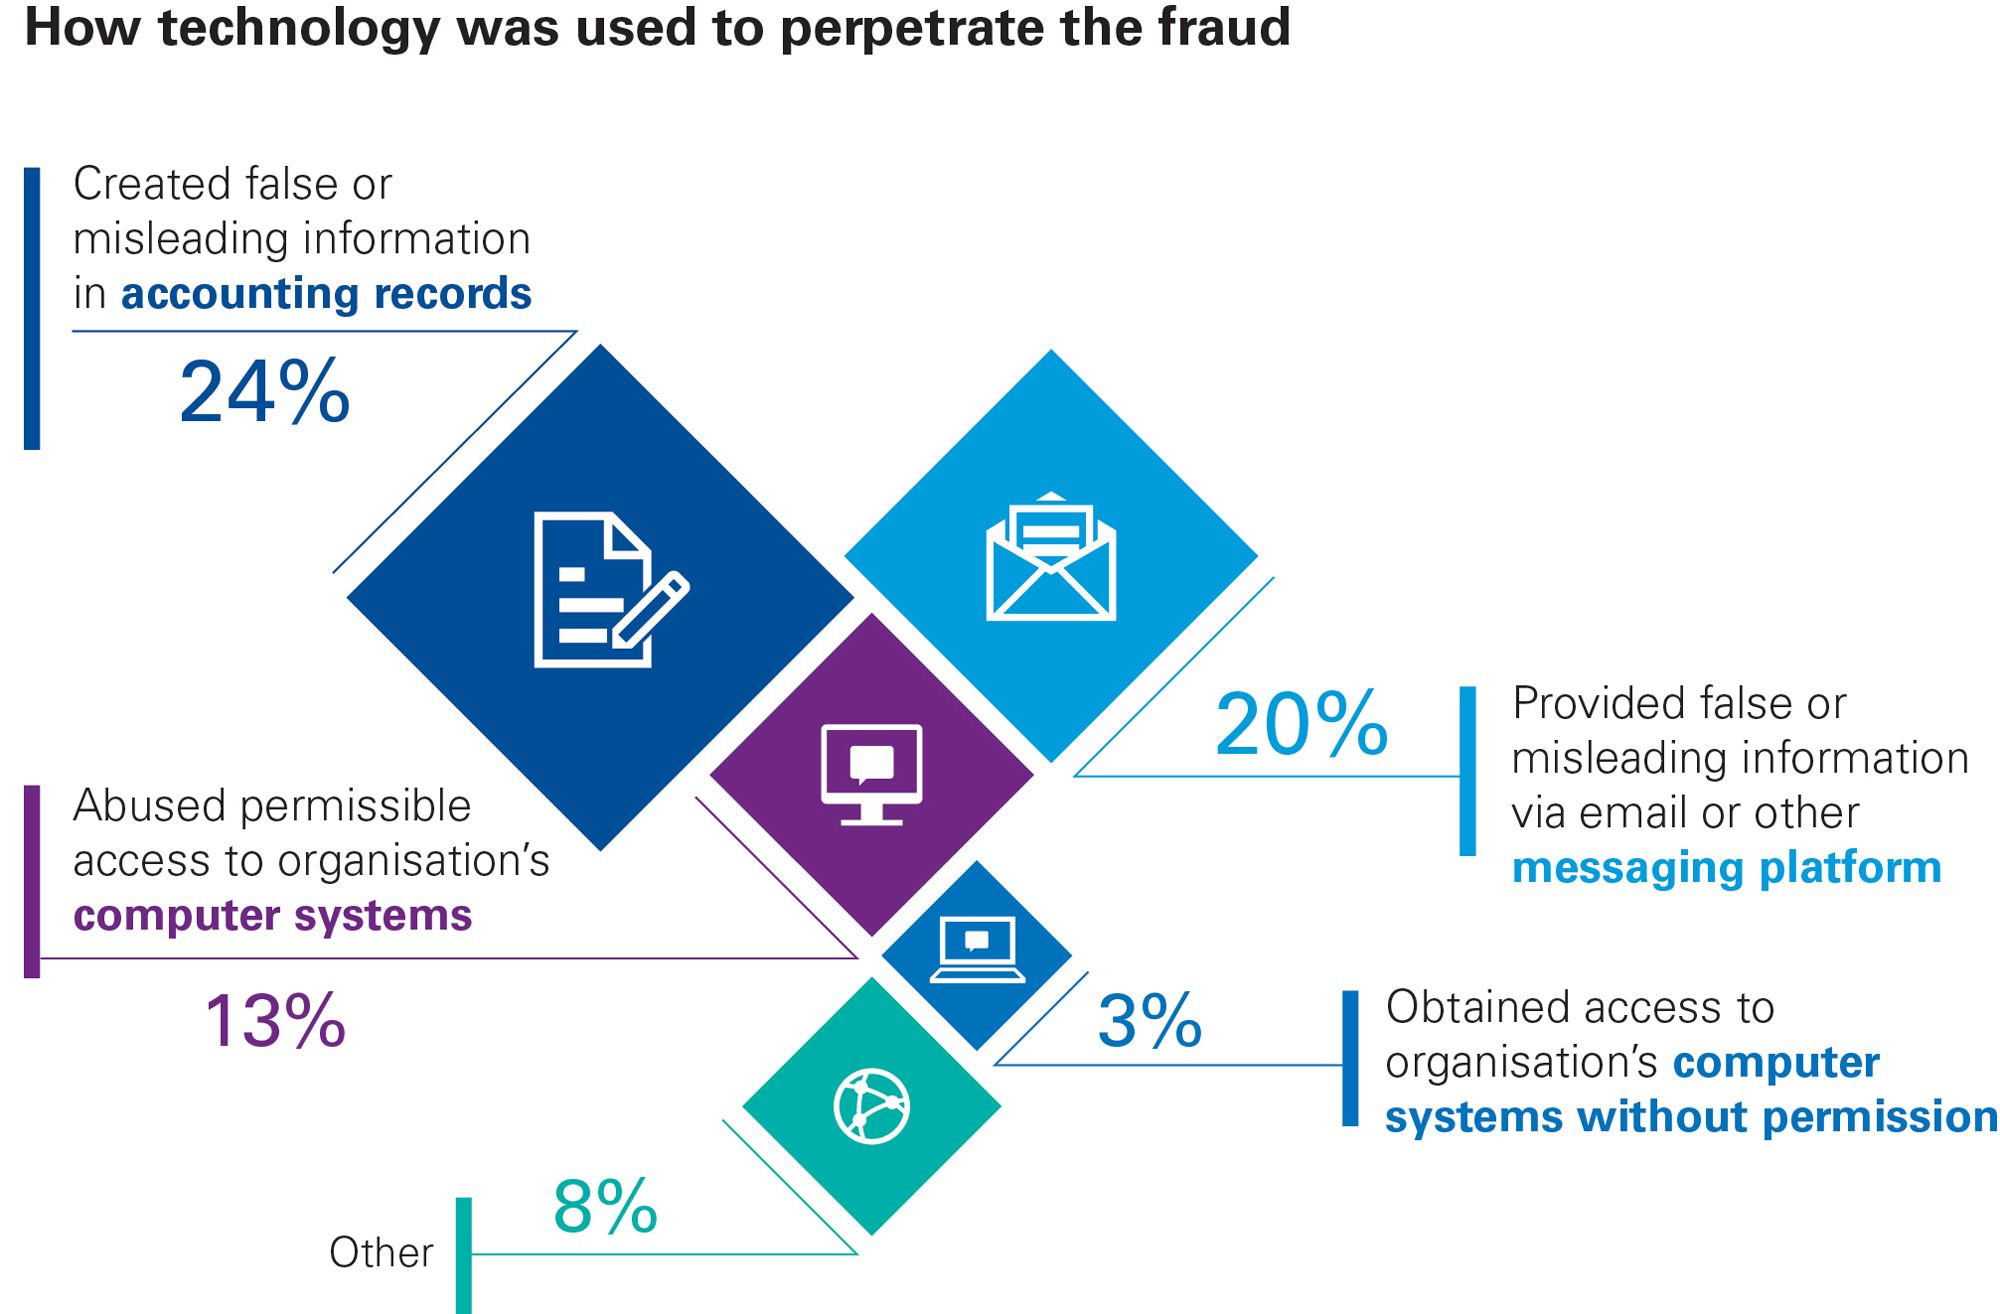 Profiles of the fraudster infographic